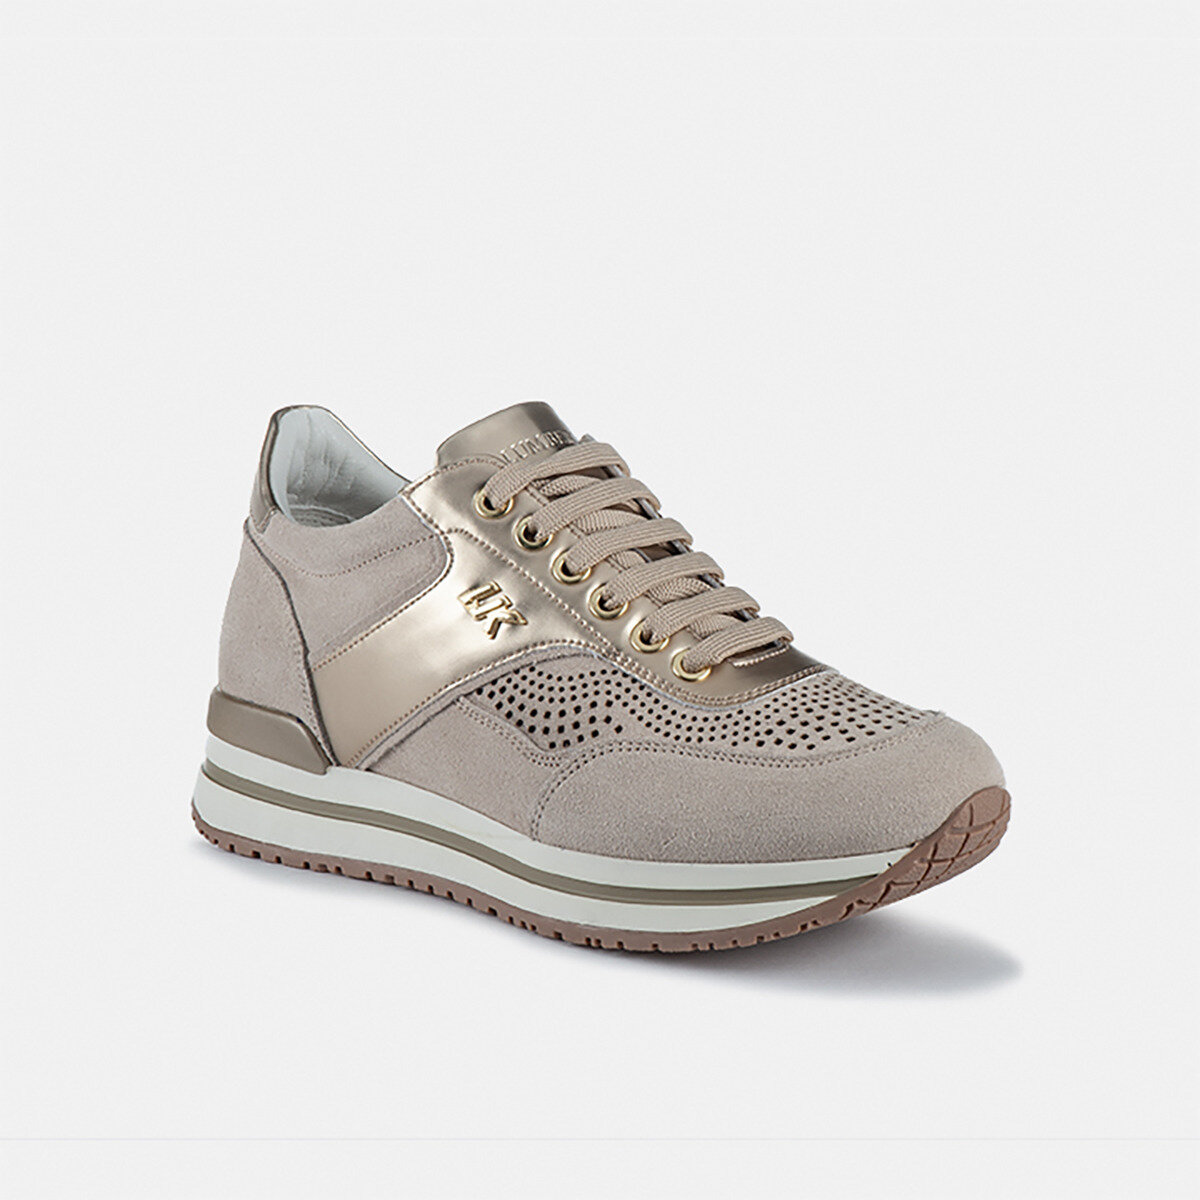 LIKE PINK TINT Woman Sneakers